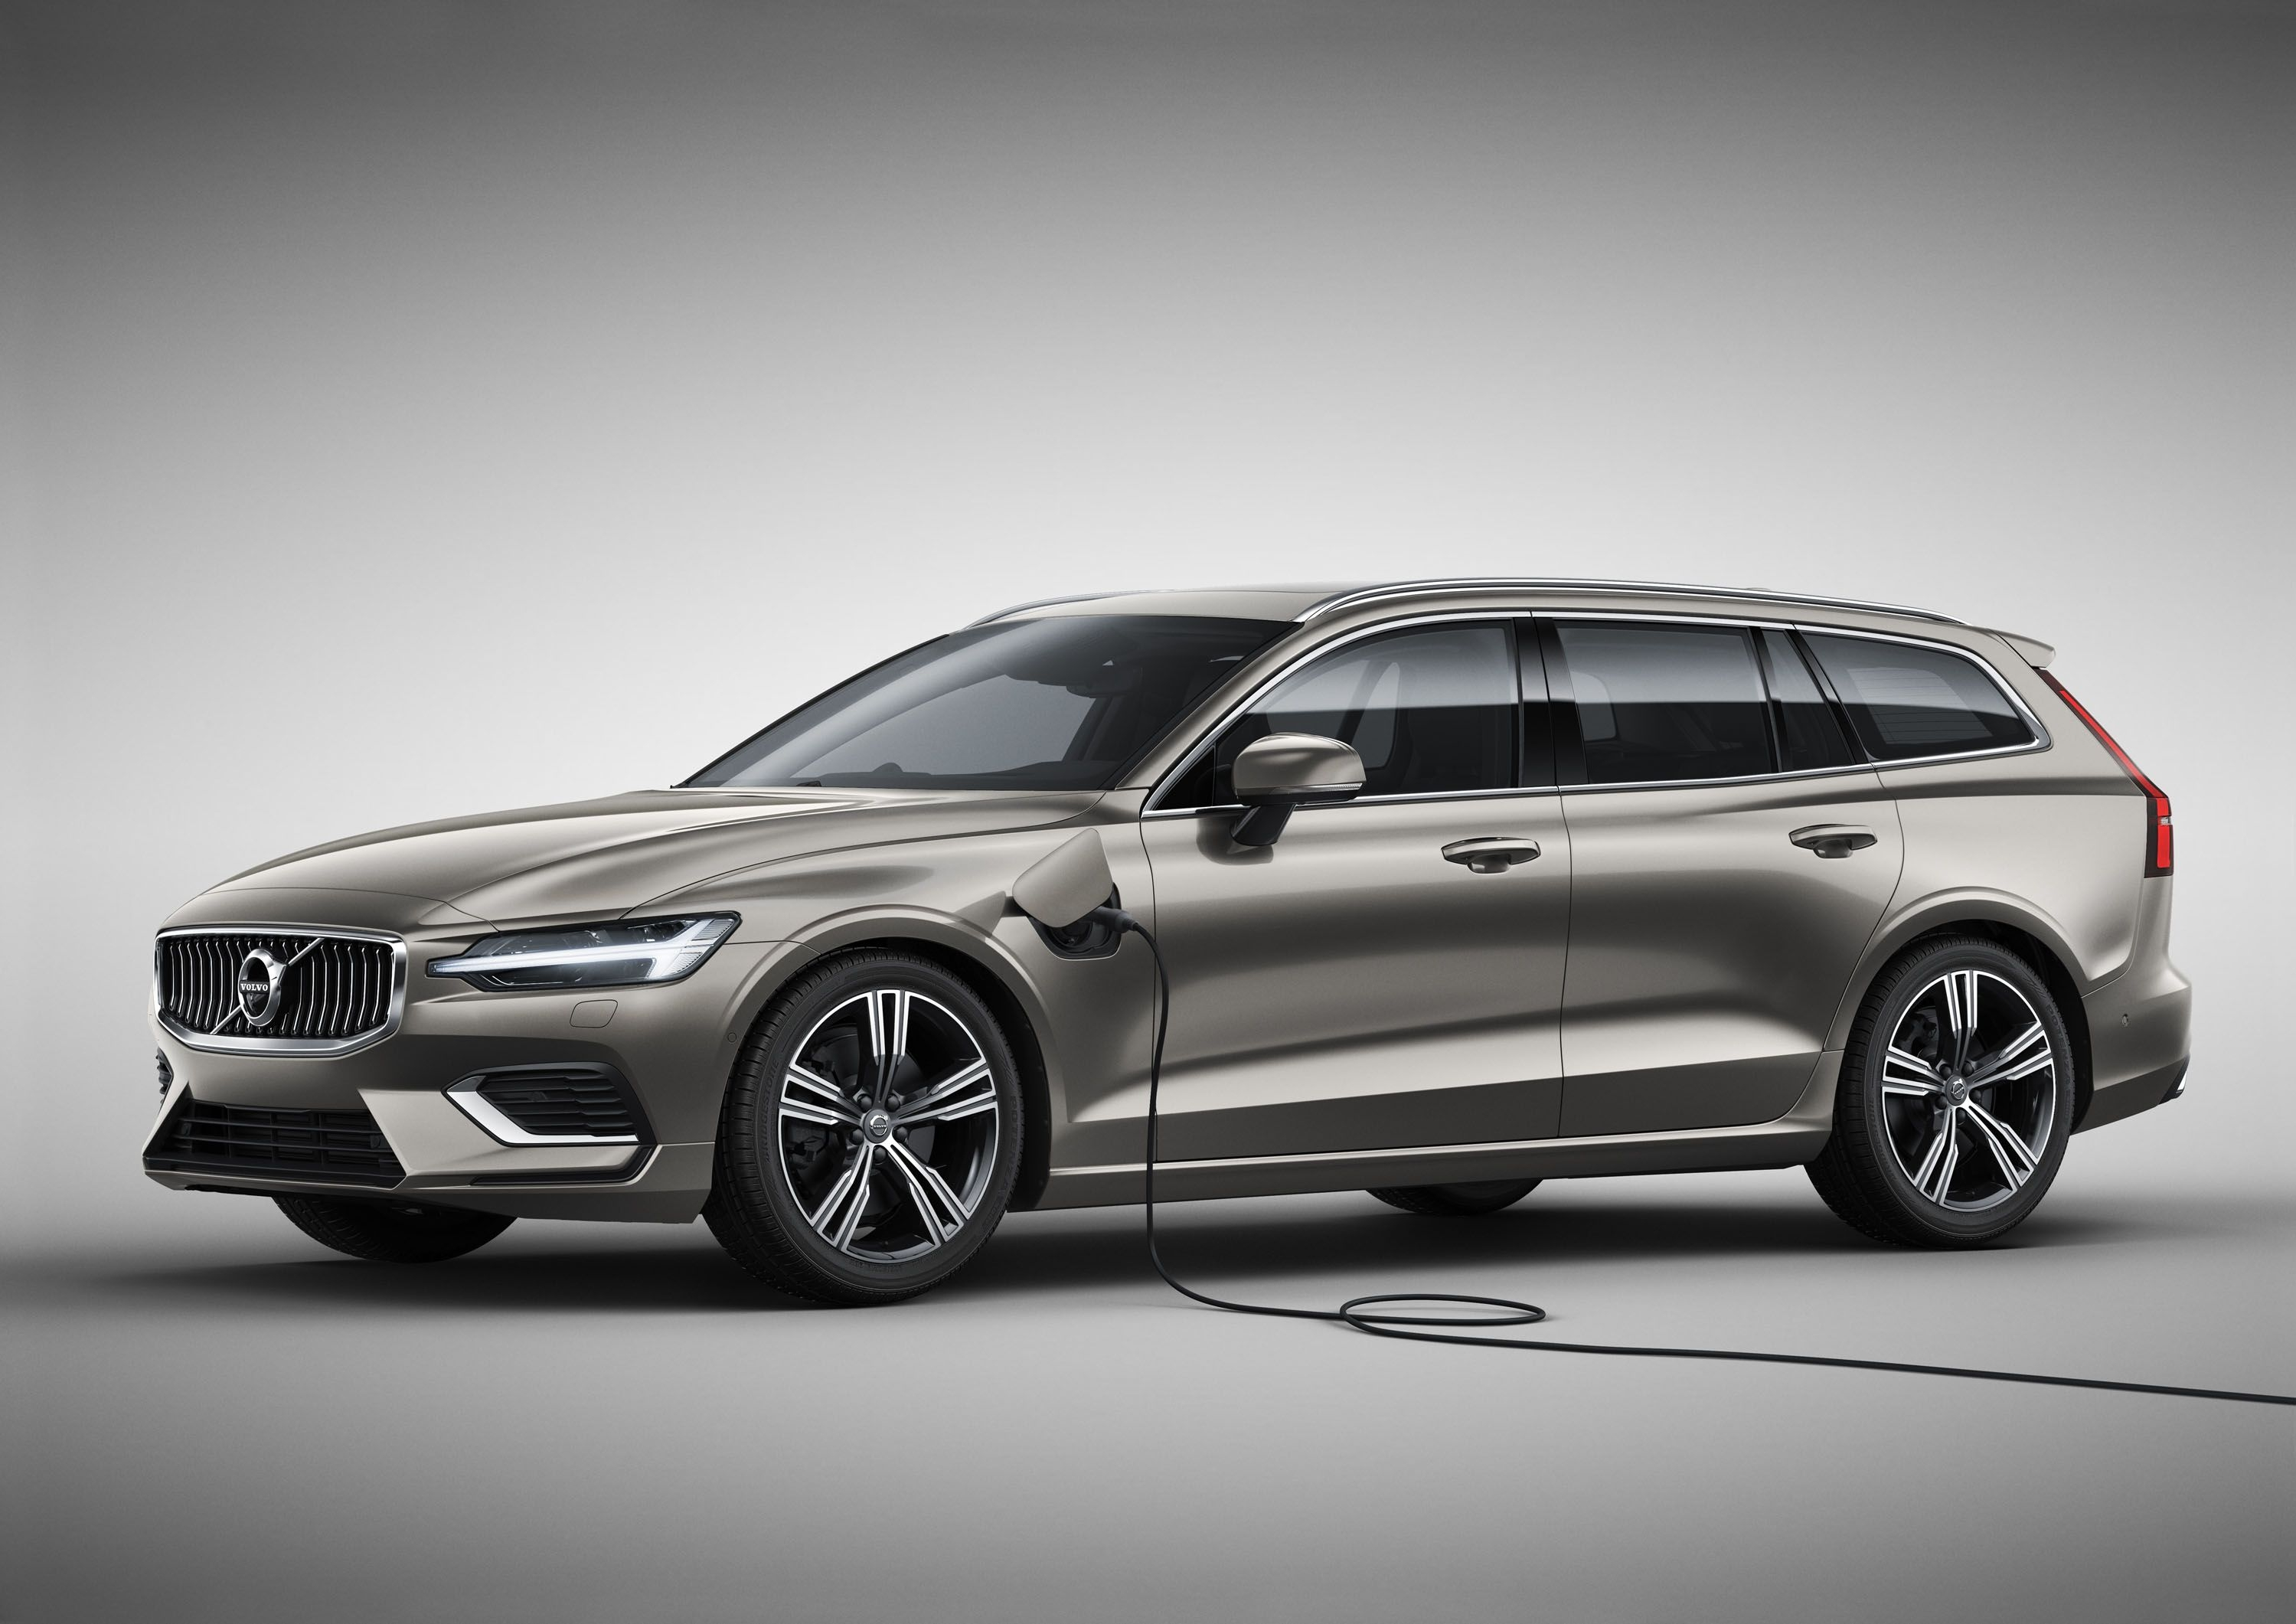 62 All New 2019 Volvo Xc70 Price and Release date